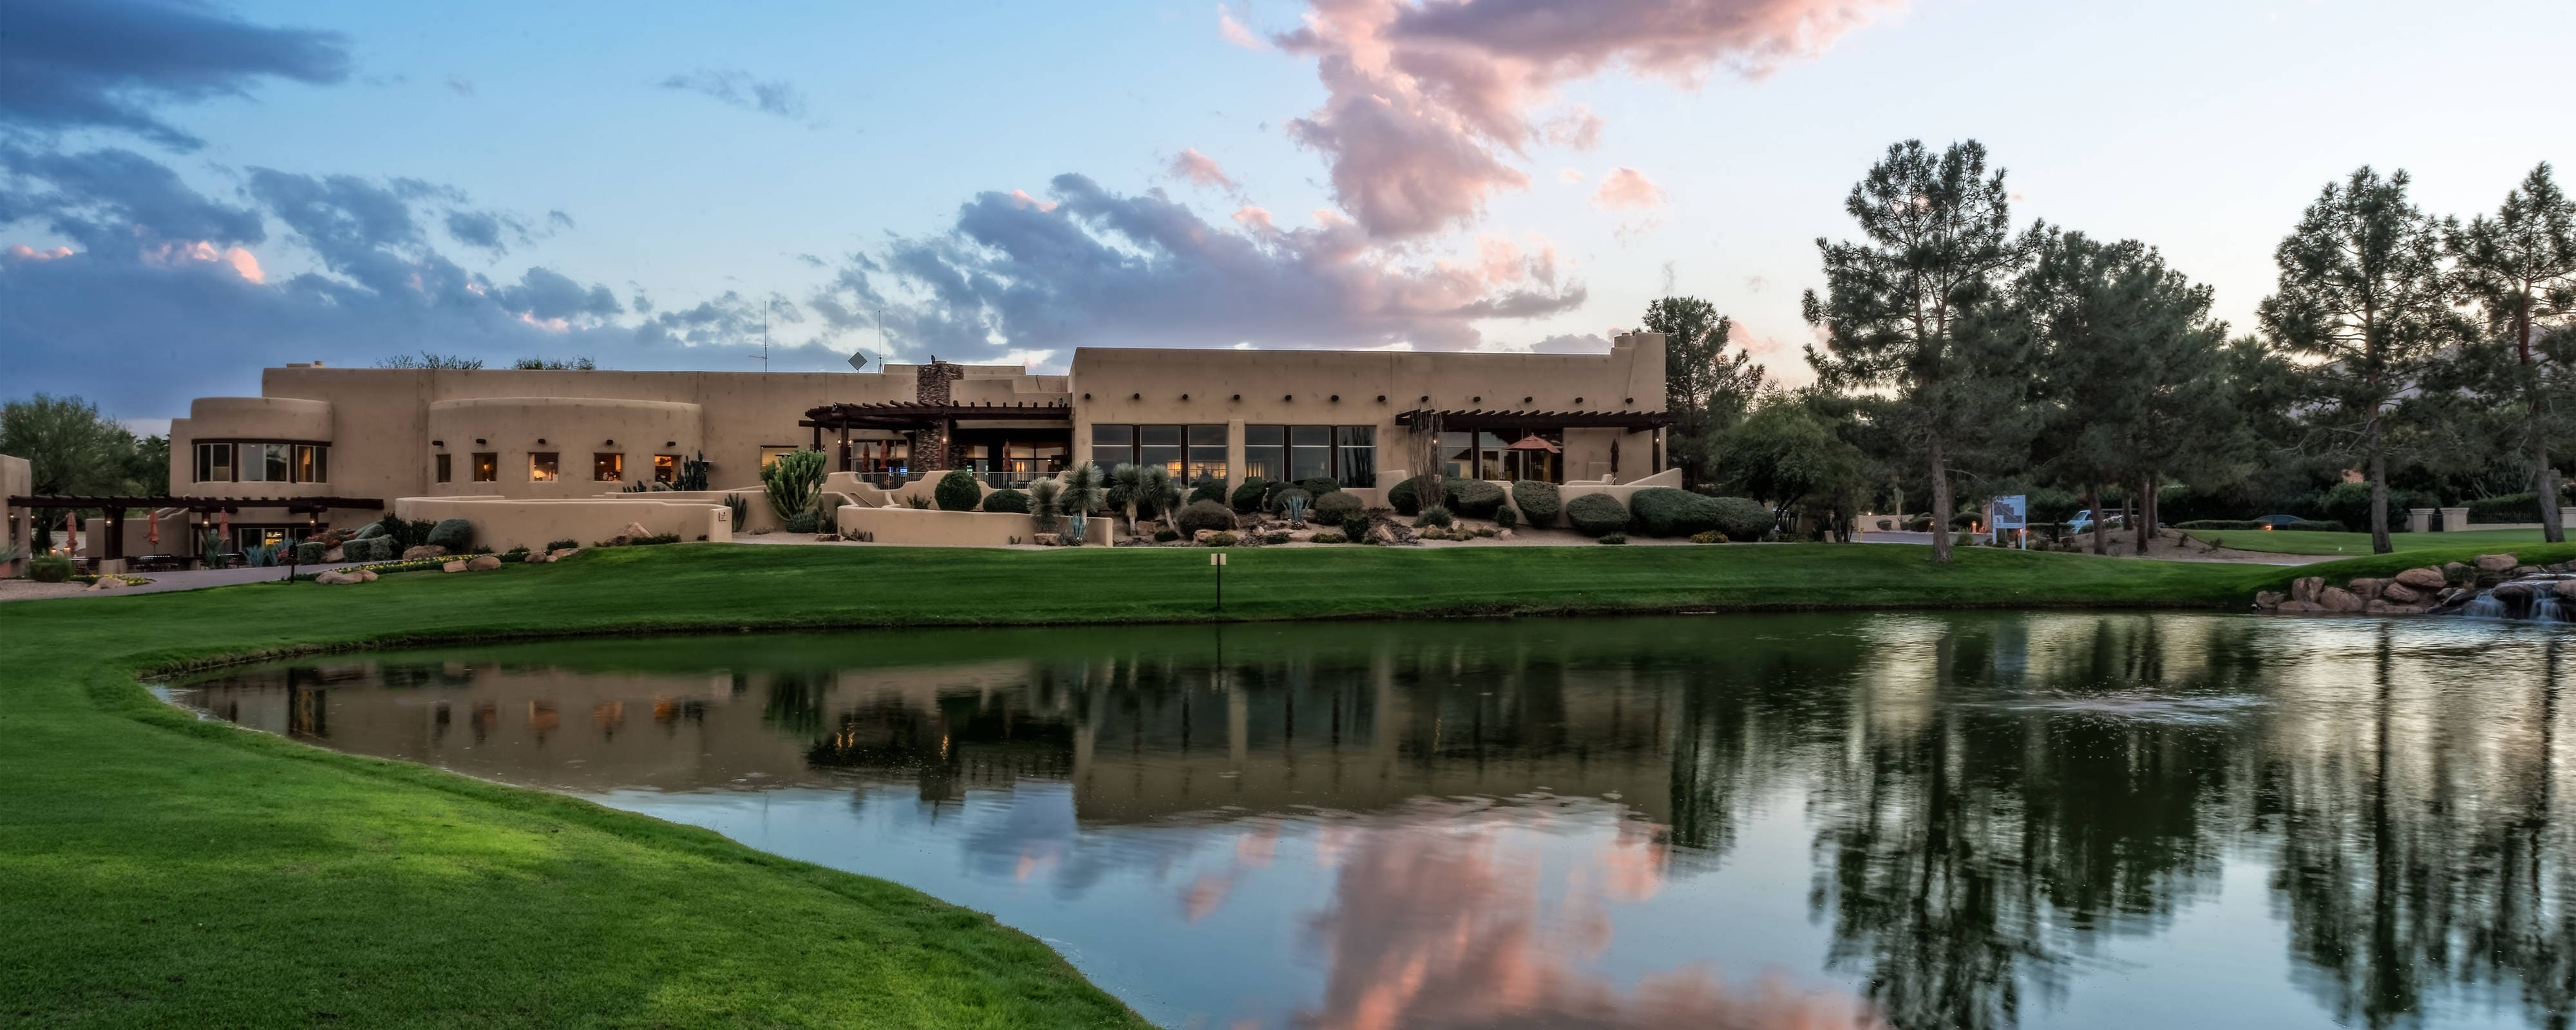 Golf Course Vacation in AZ | JW Marriott Scottsdale Camelback Inn Resort & Spa